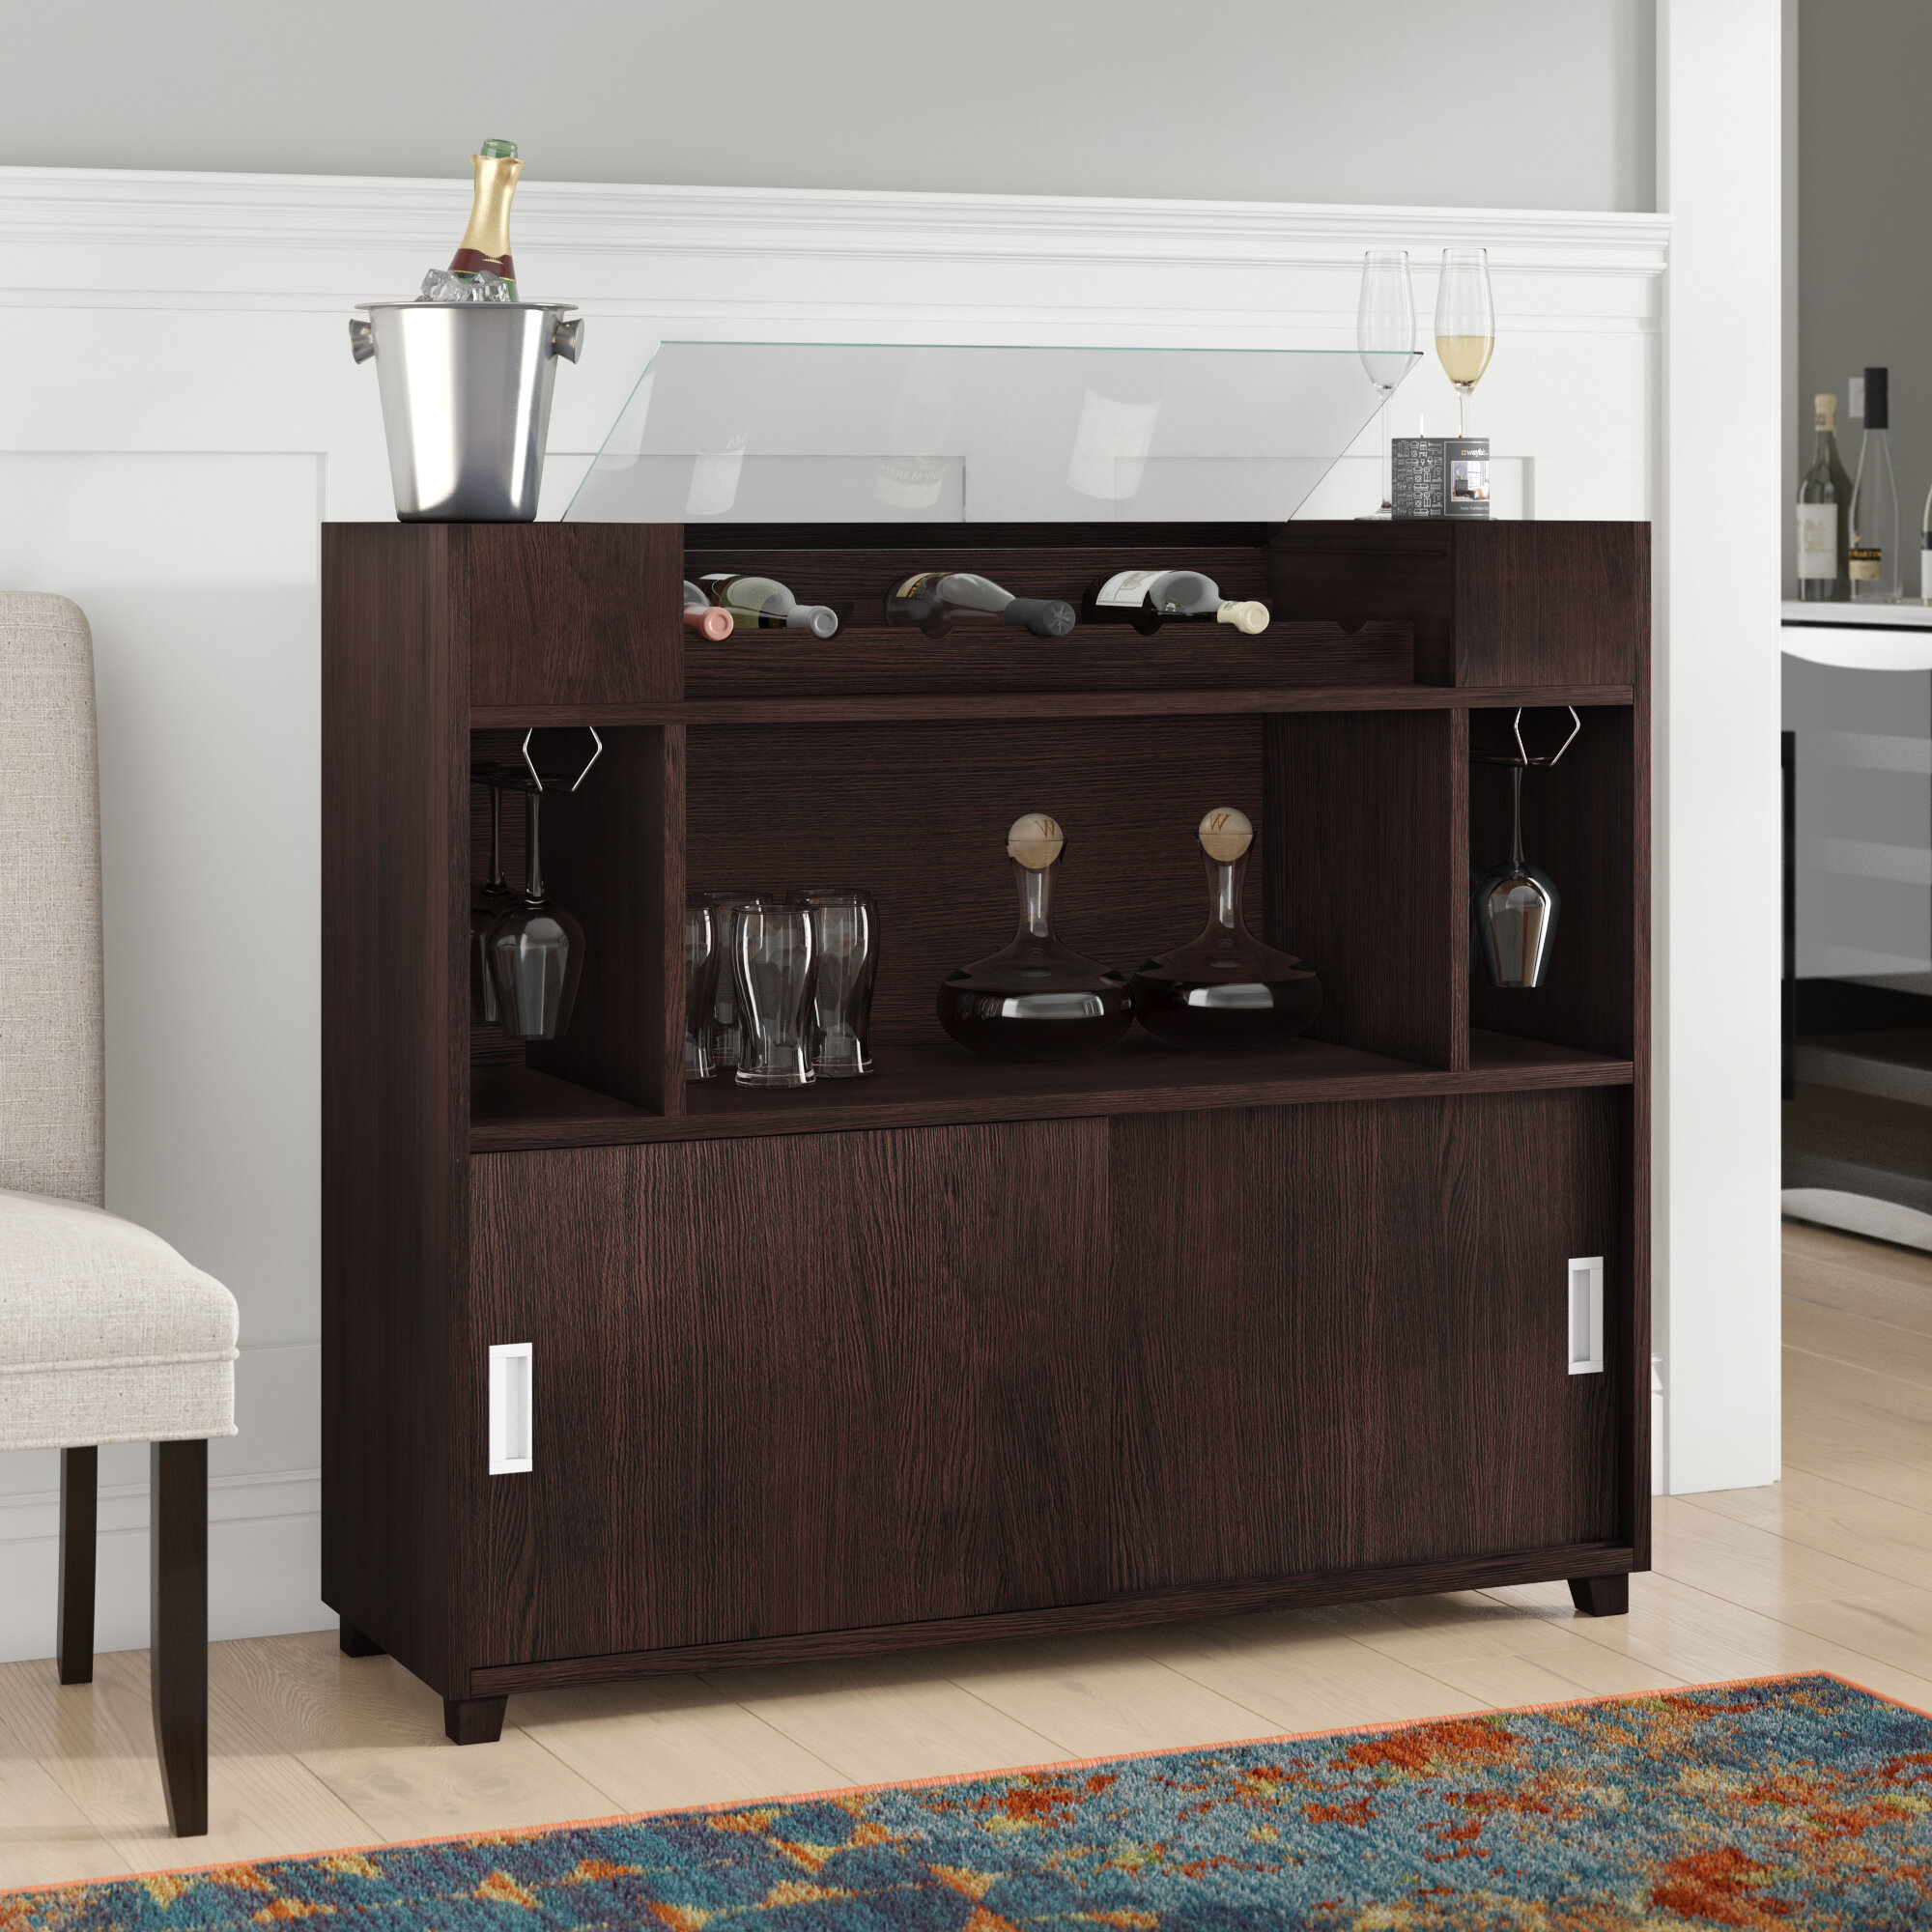 Hailee Buffet Table Throughout Wooden Buffets With Two Side Door Storage Cabinets And Stemware Rack (View 8 of 30)